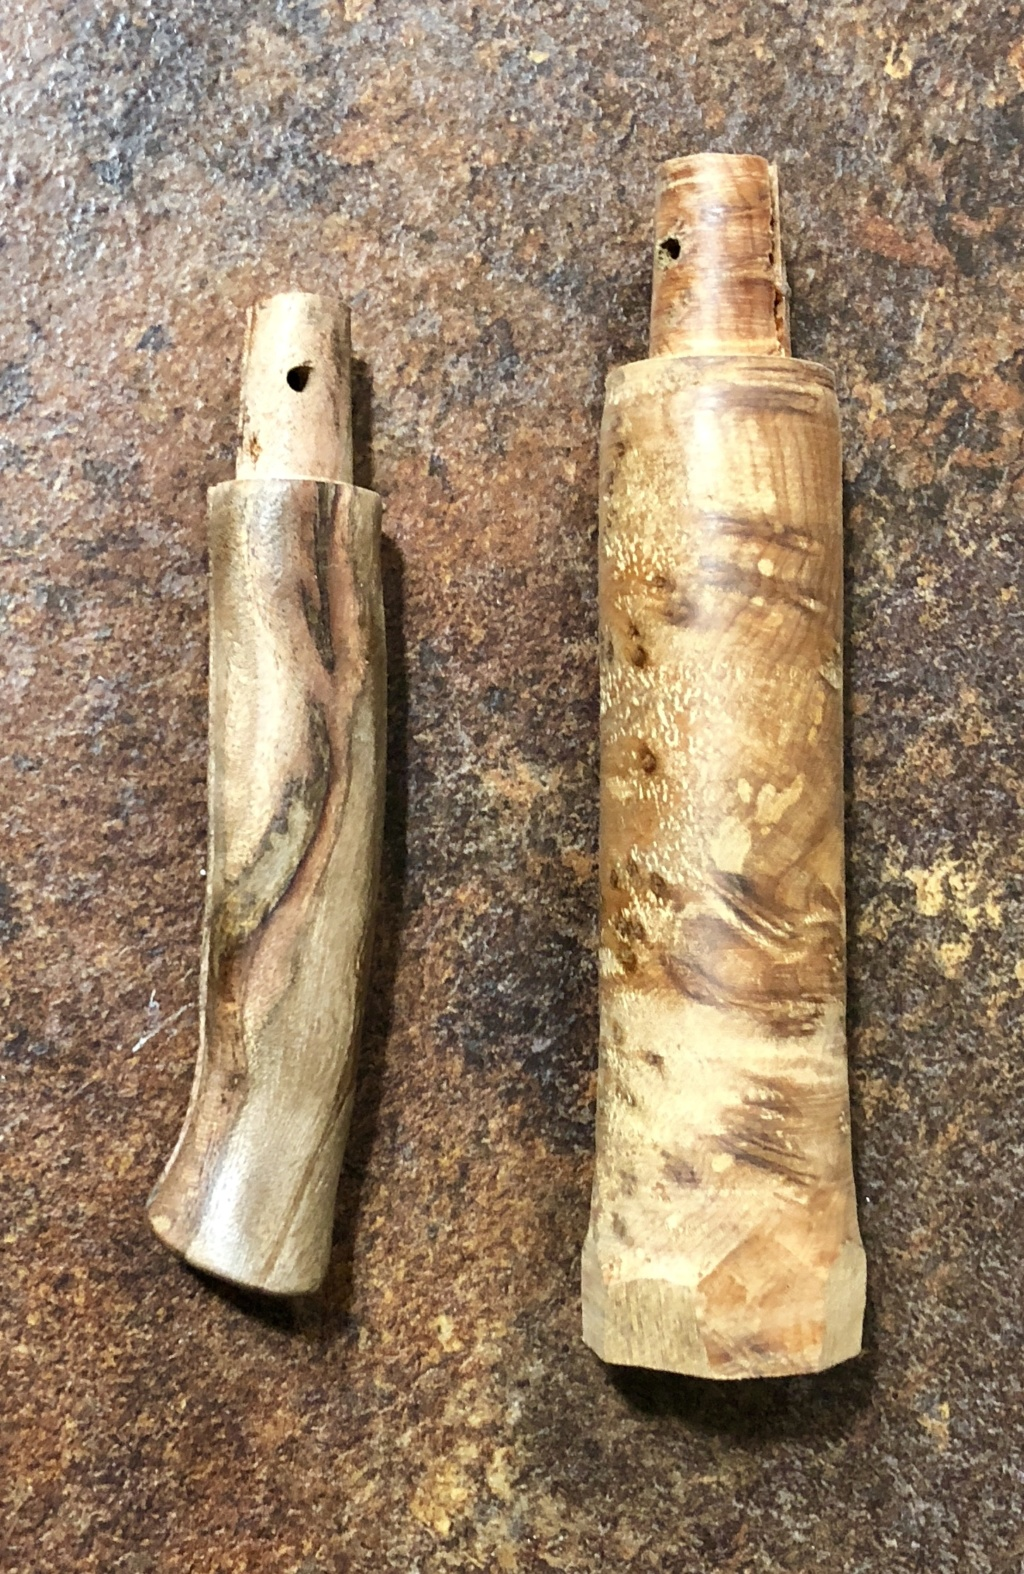 """Opinel en cerf """"bricolage maison"""" - Page 5 Img_4625"""